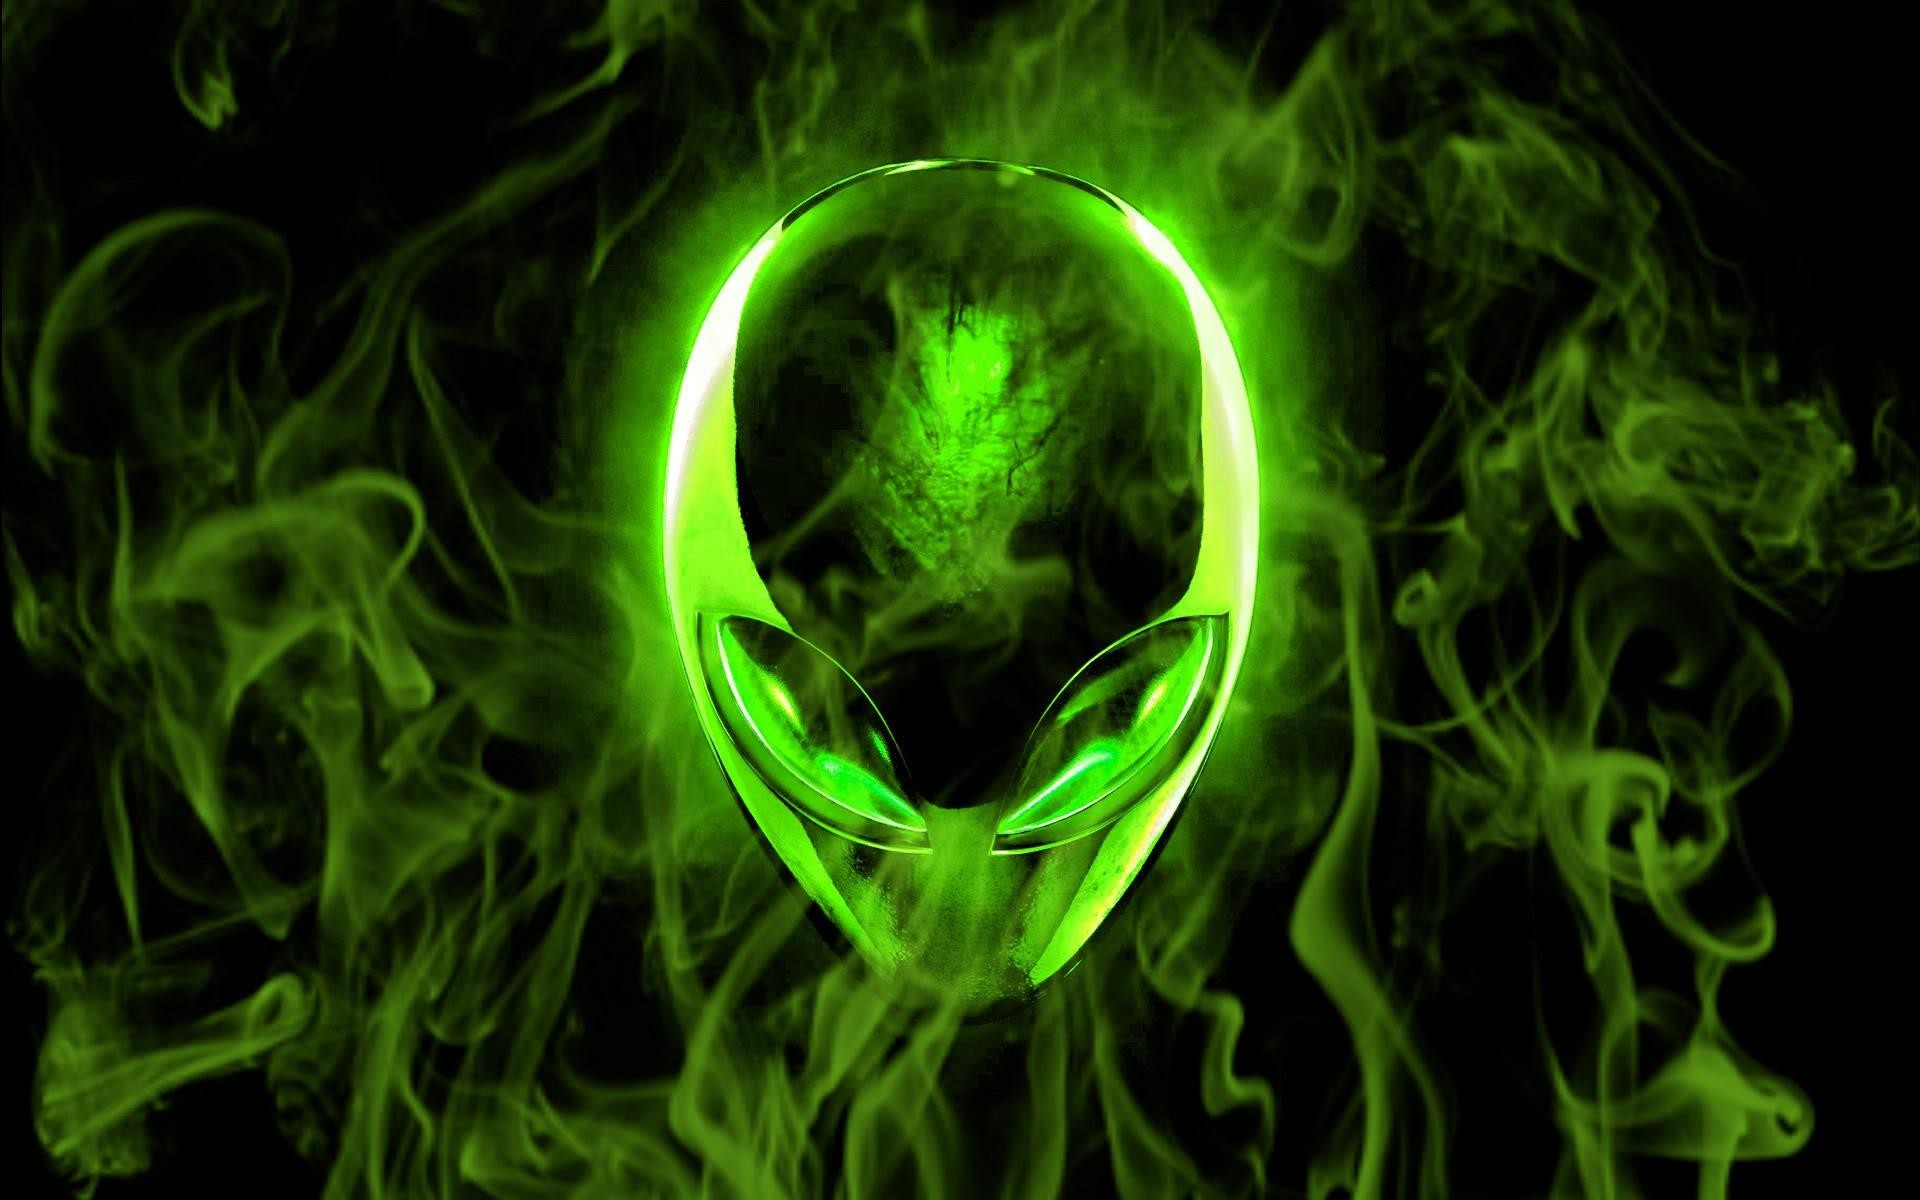 1920x1200 Green Alien and Smoke HD Wallpaper | Hintergrund |  | ID:686986 -  Wallpaper Abyss